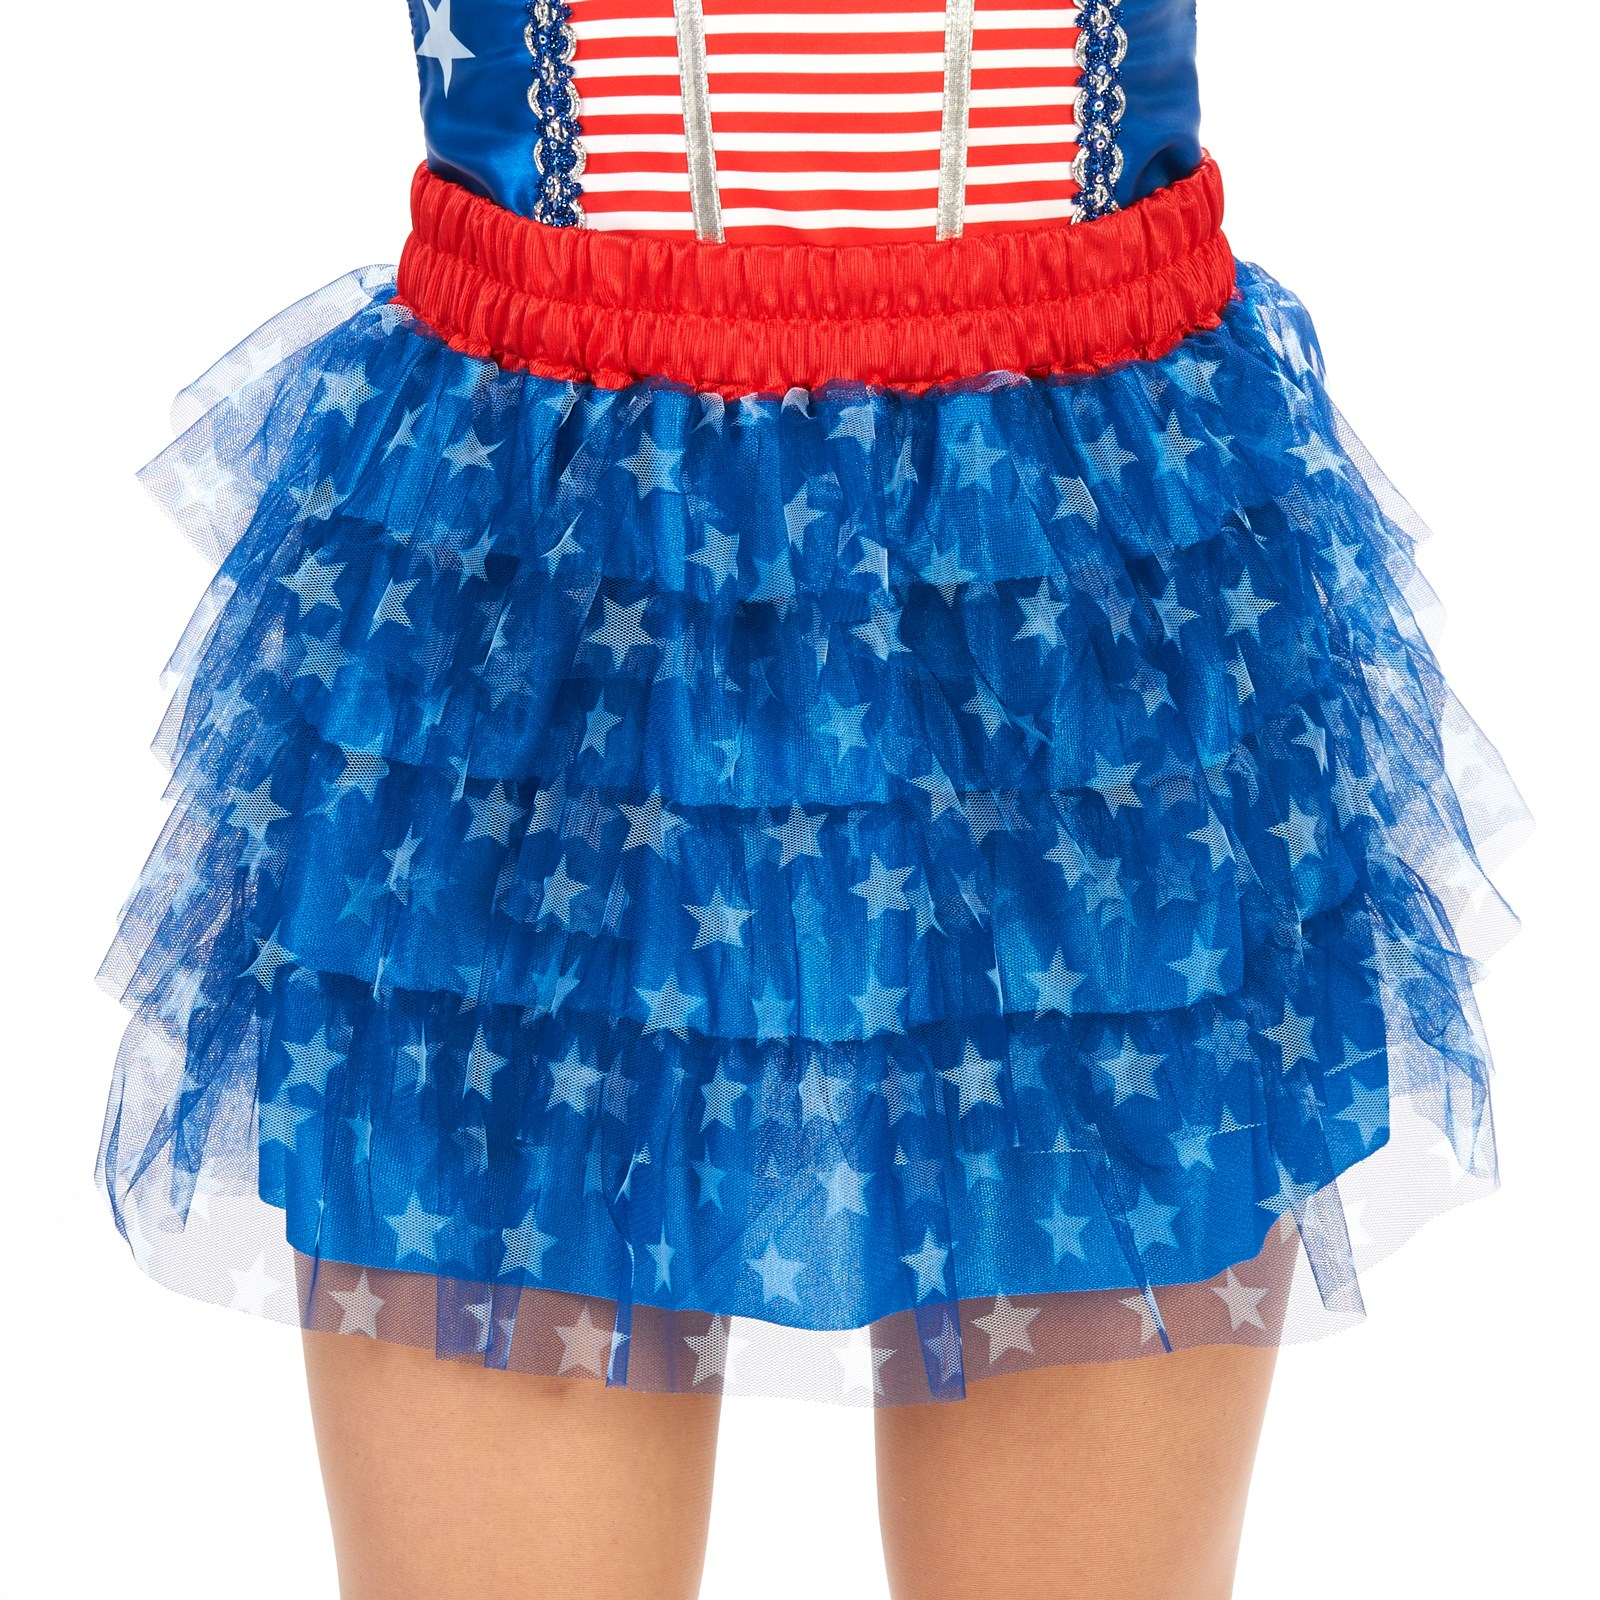 Find great deals on eBay for blue skirt with white stars. Shop with confidence.